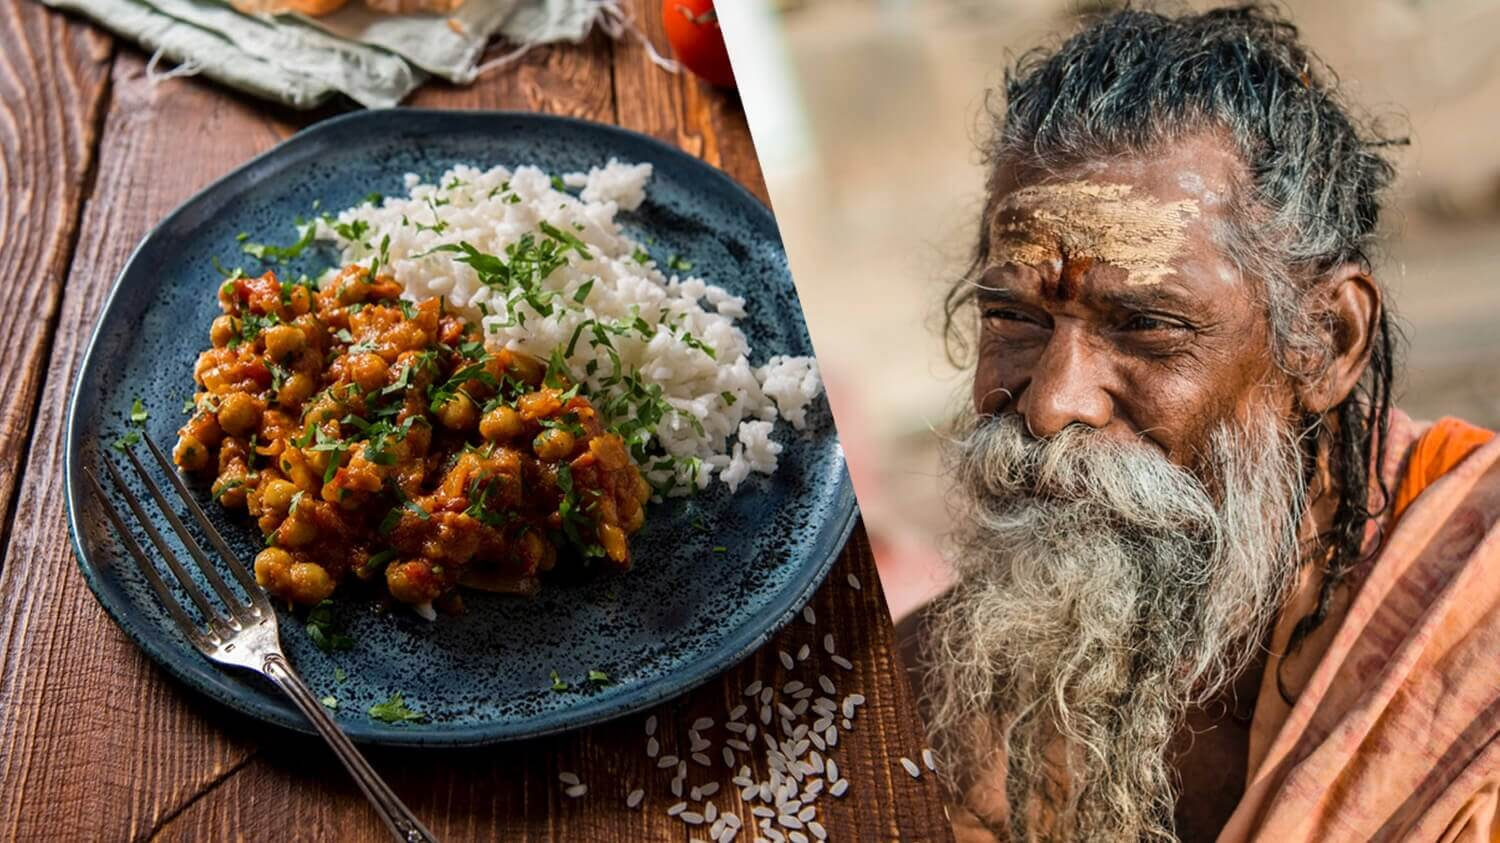 30% of Meals Served at the Hindu American Foundation Will Be Vegan